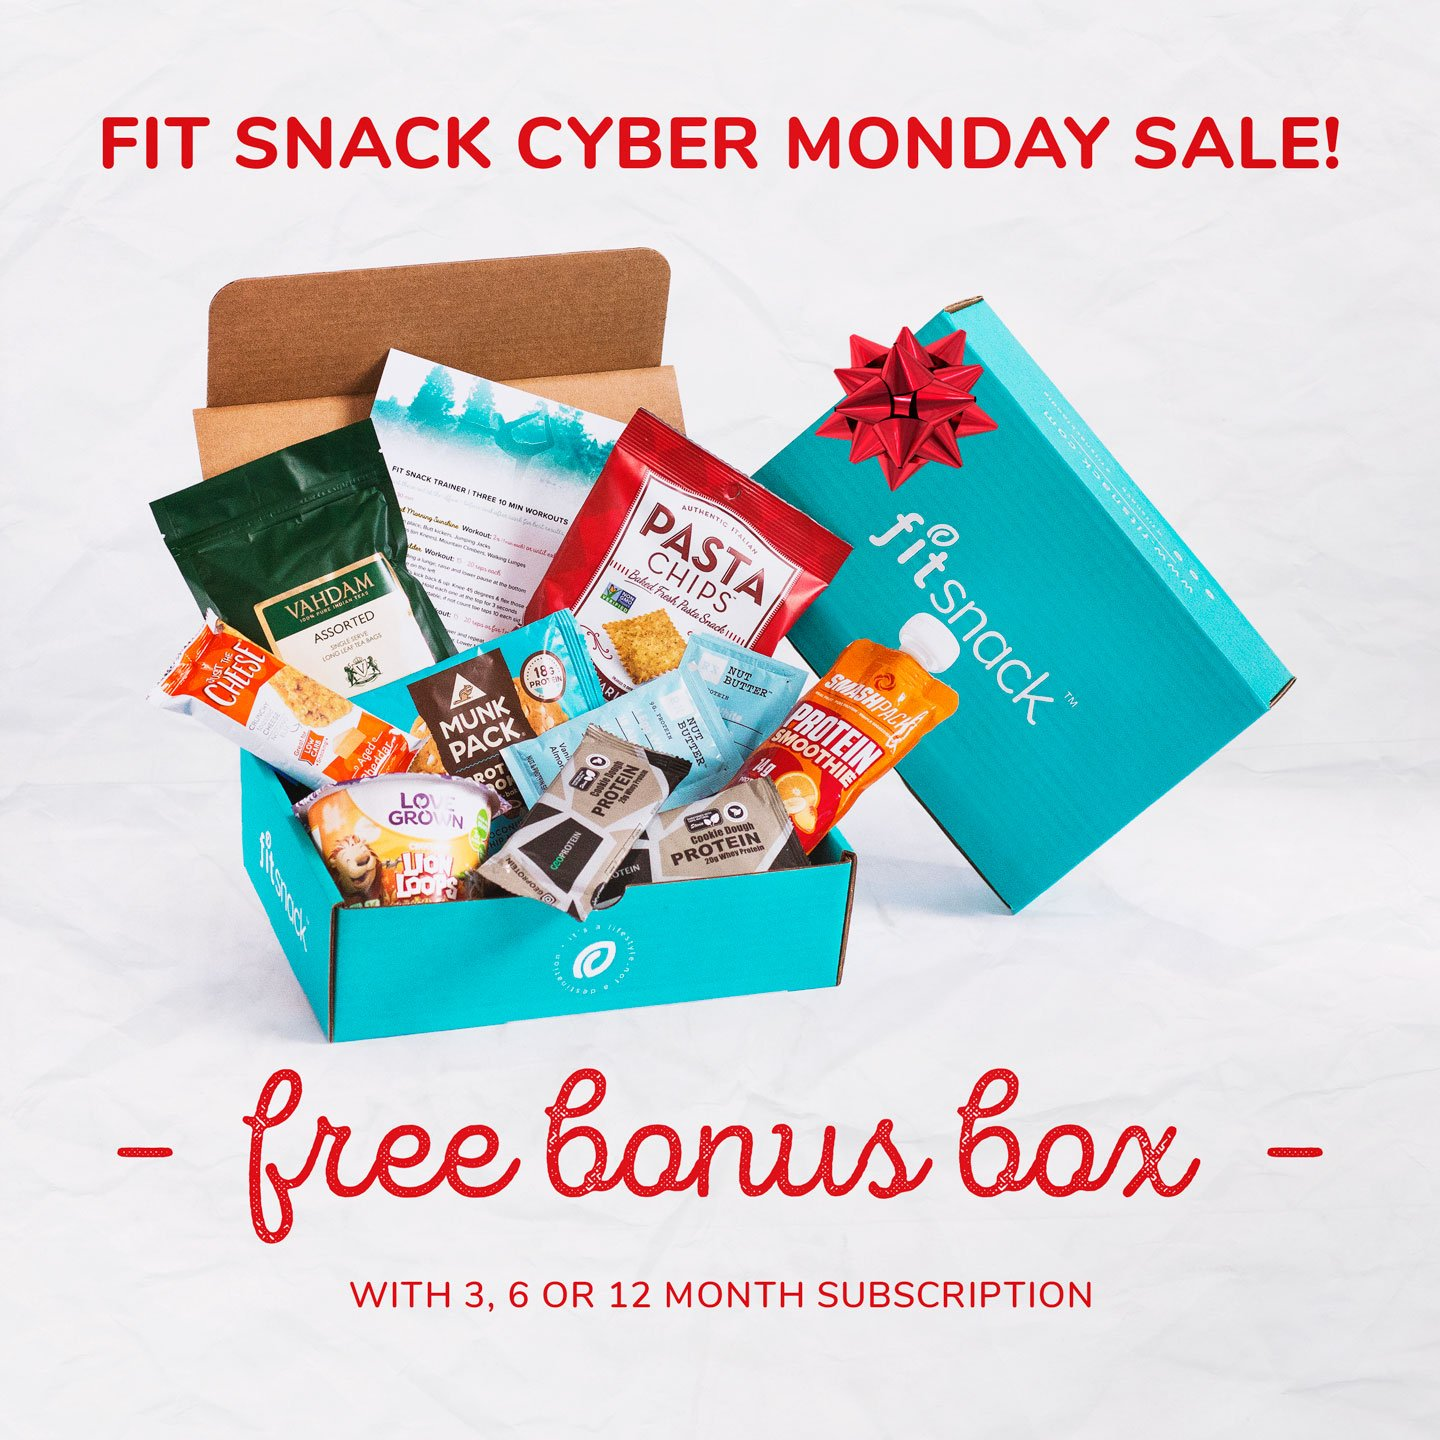 FitSnack Cyber Monday Deal – Free Bonus Box With Subscription